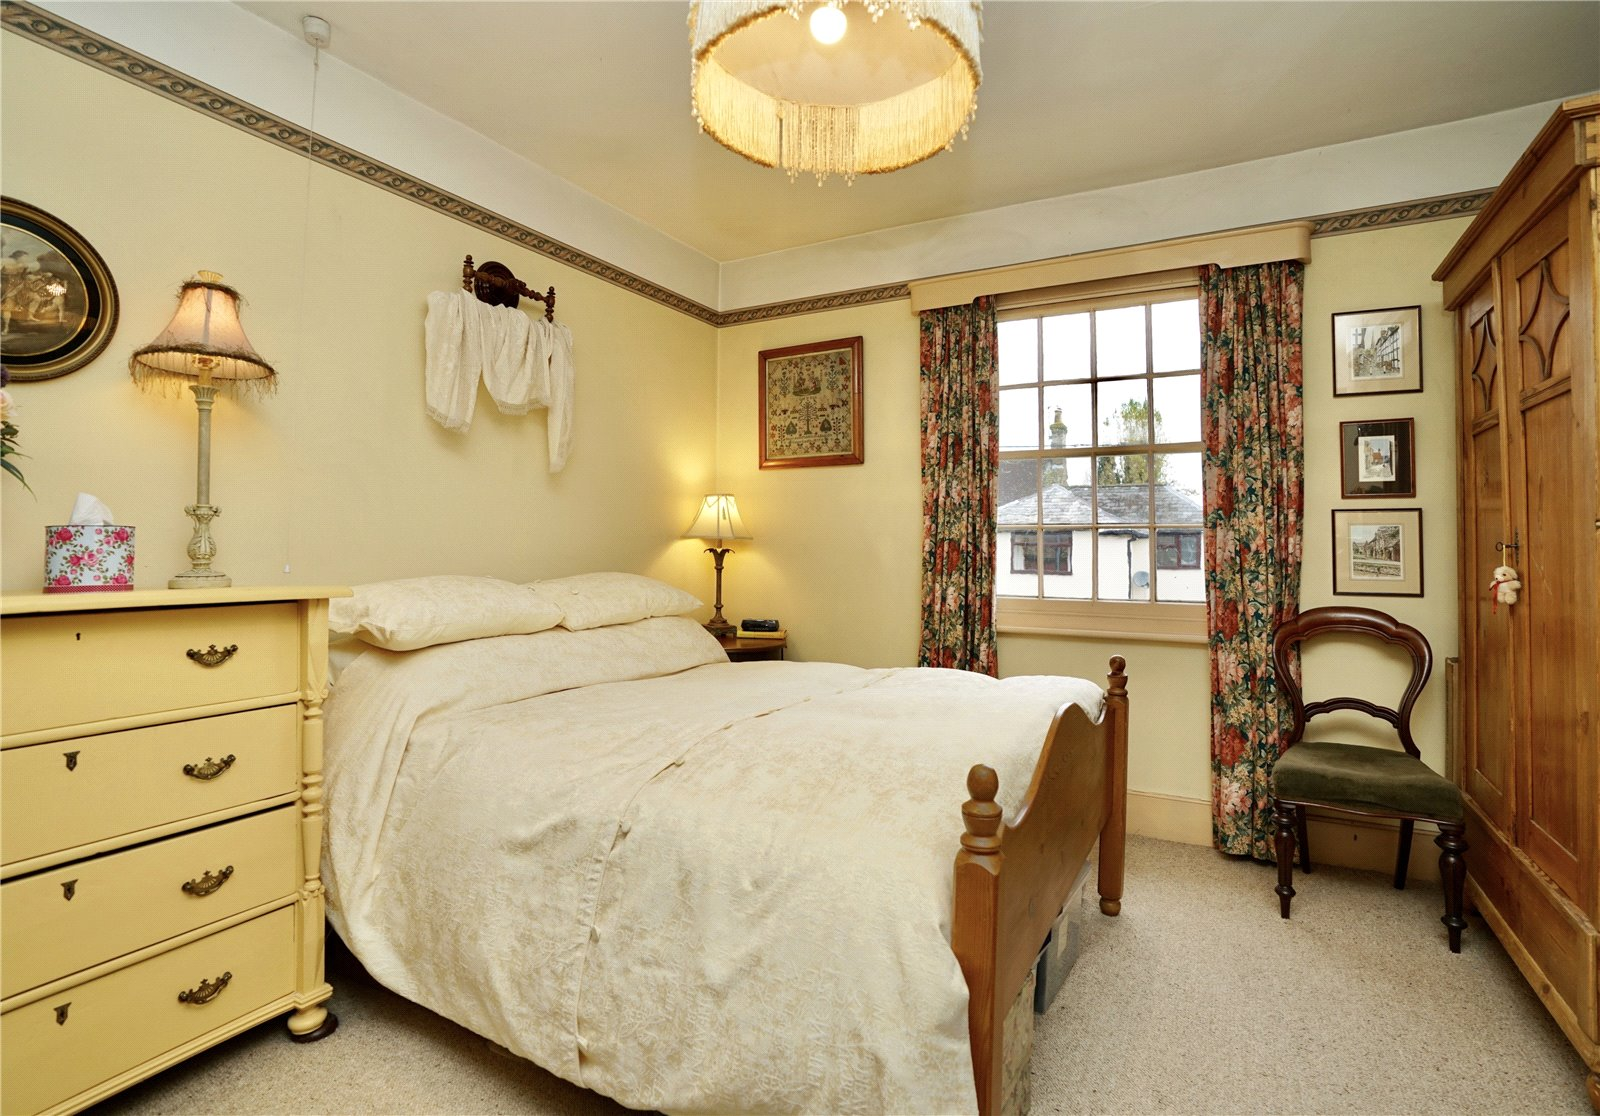 4 bed house for sale in Great Staughton  - Property Image 15